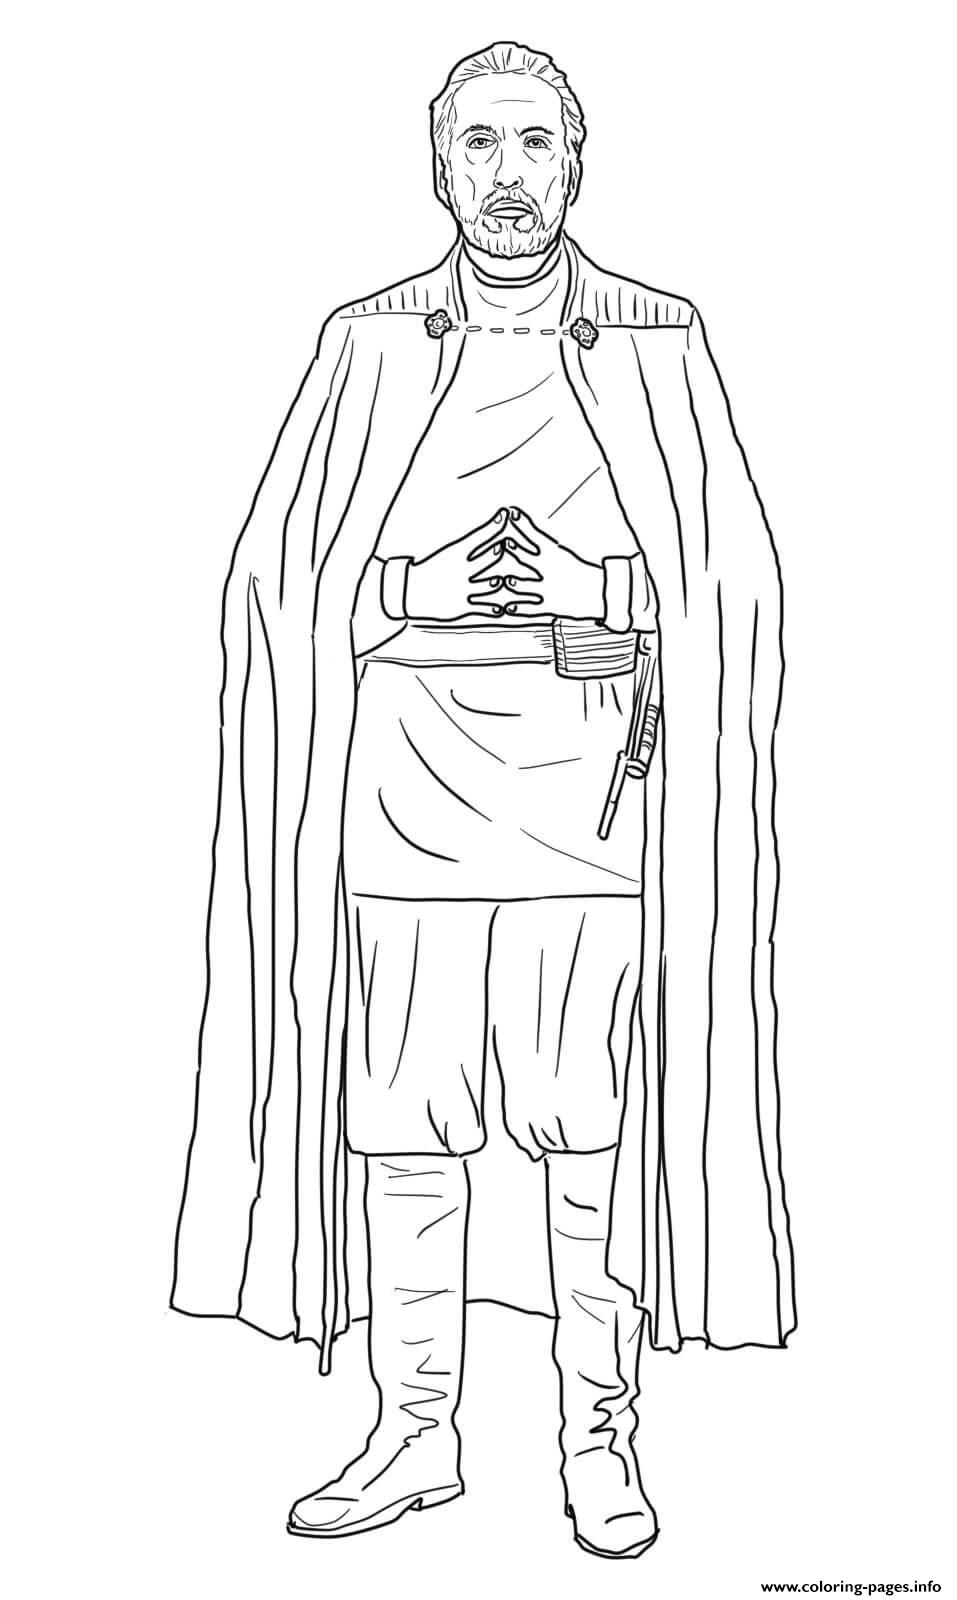 Count Dooku Star Wars The Clone Wars coloring pages